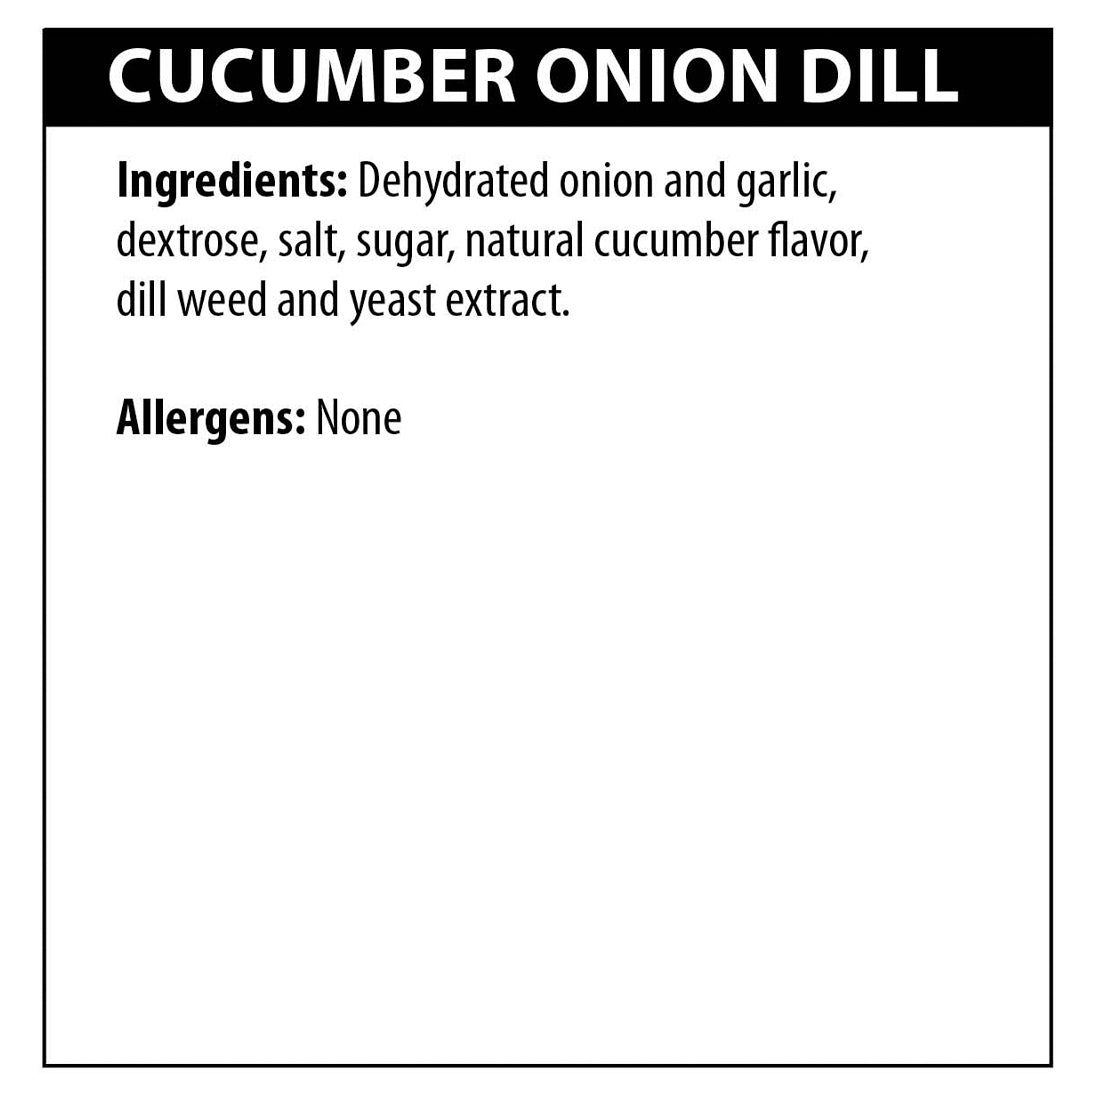 Cucumber Onion Dill Dip Ingredients